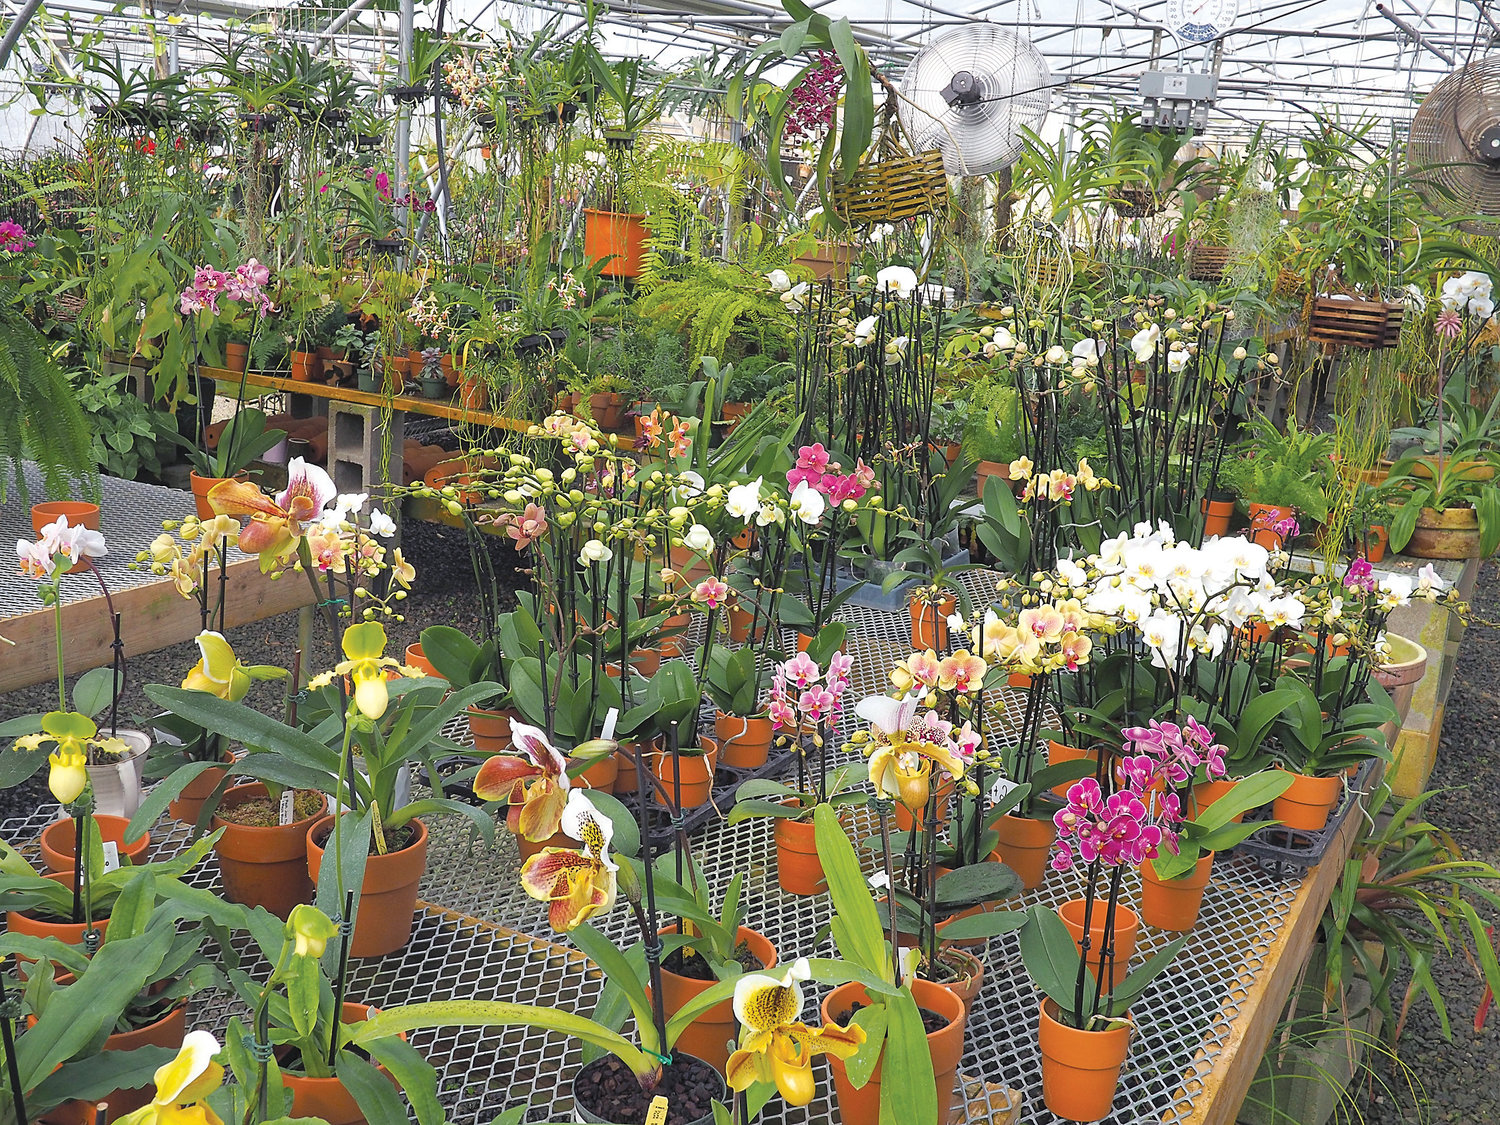 The Orchid Gallery carries a variety of orchids which fill the greenhouse with vibrant colors and delicate fragrances.